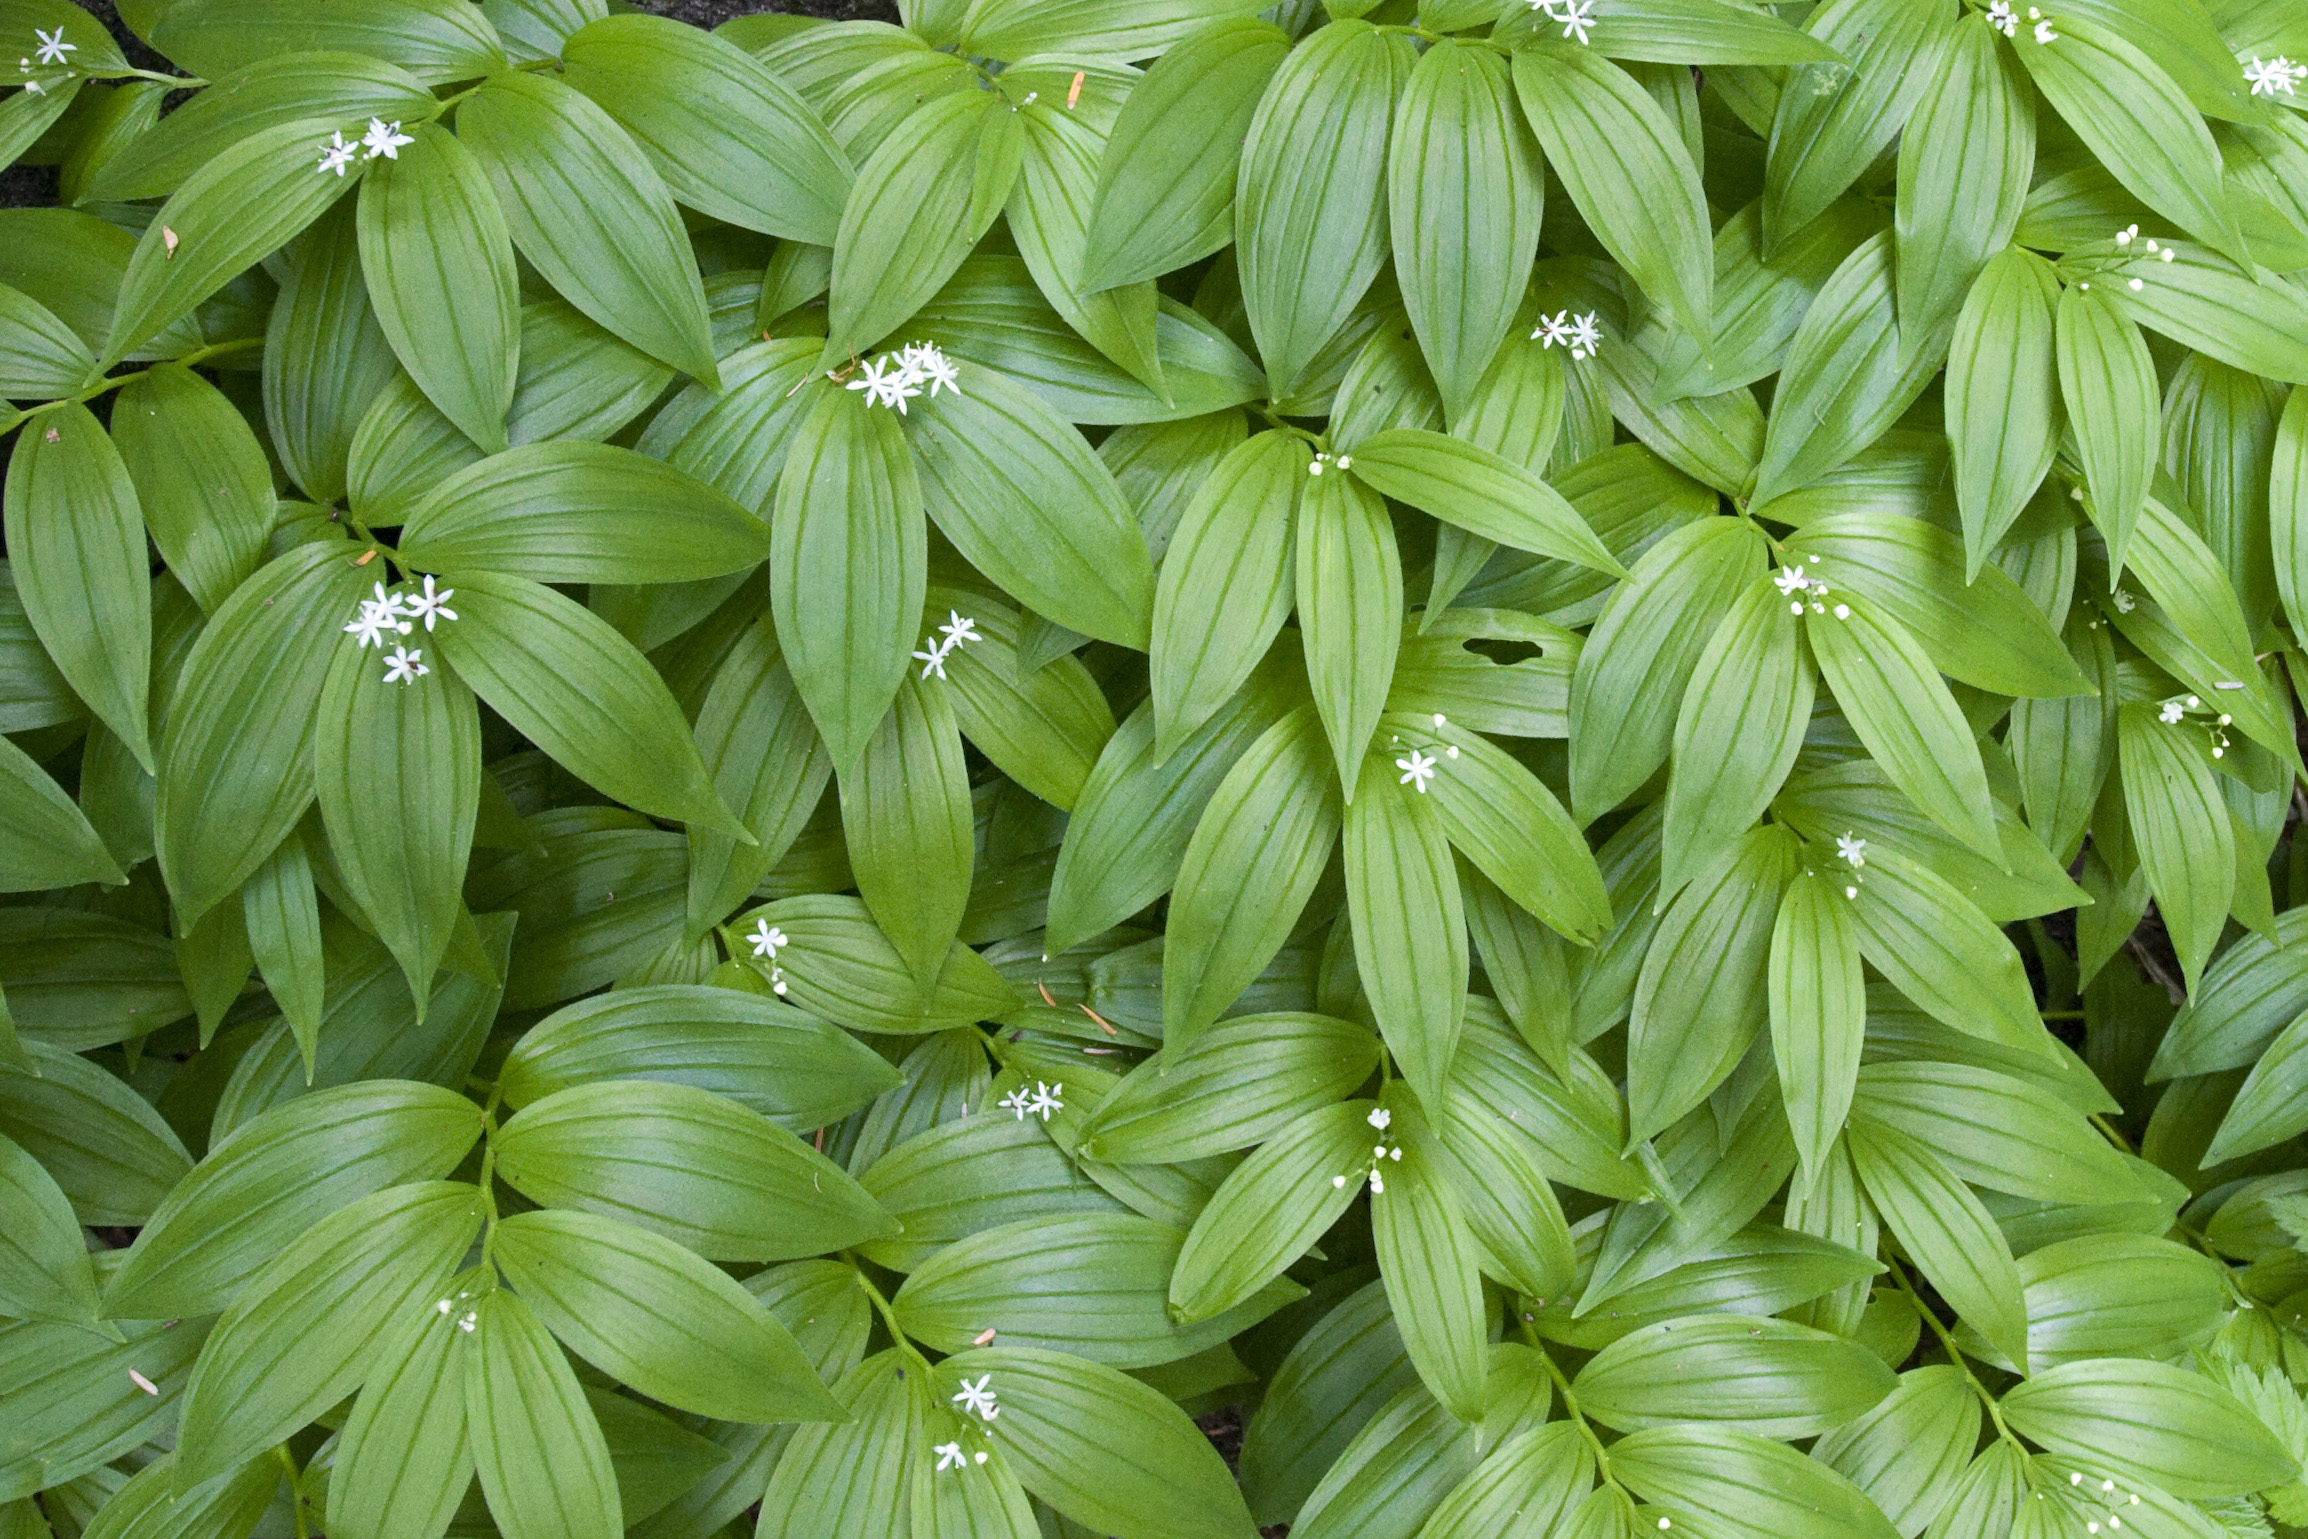 Texture of False Solomon's Seal leaves and flowers